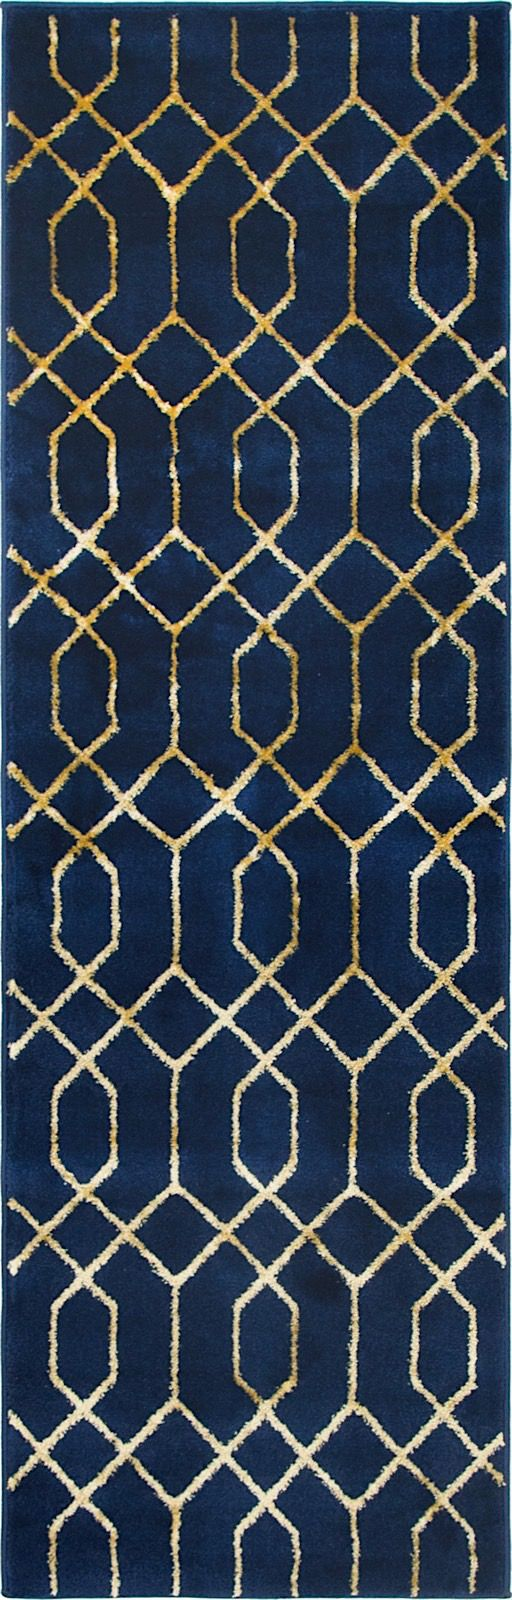 rugpal glitzy contemporary area rug collection